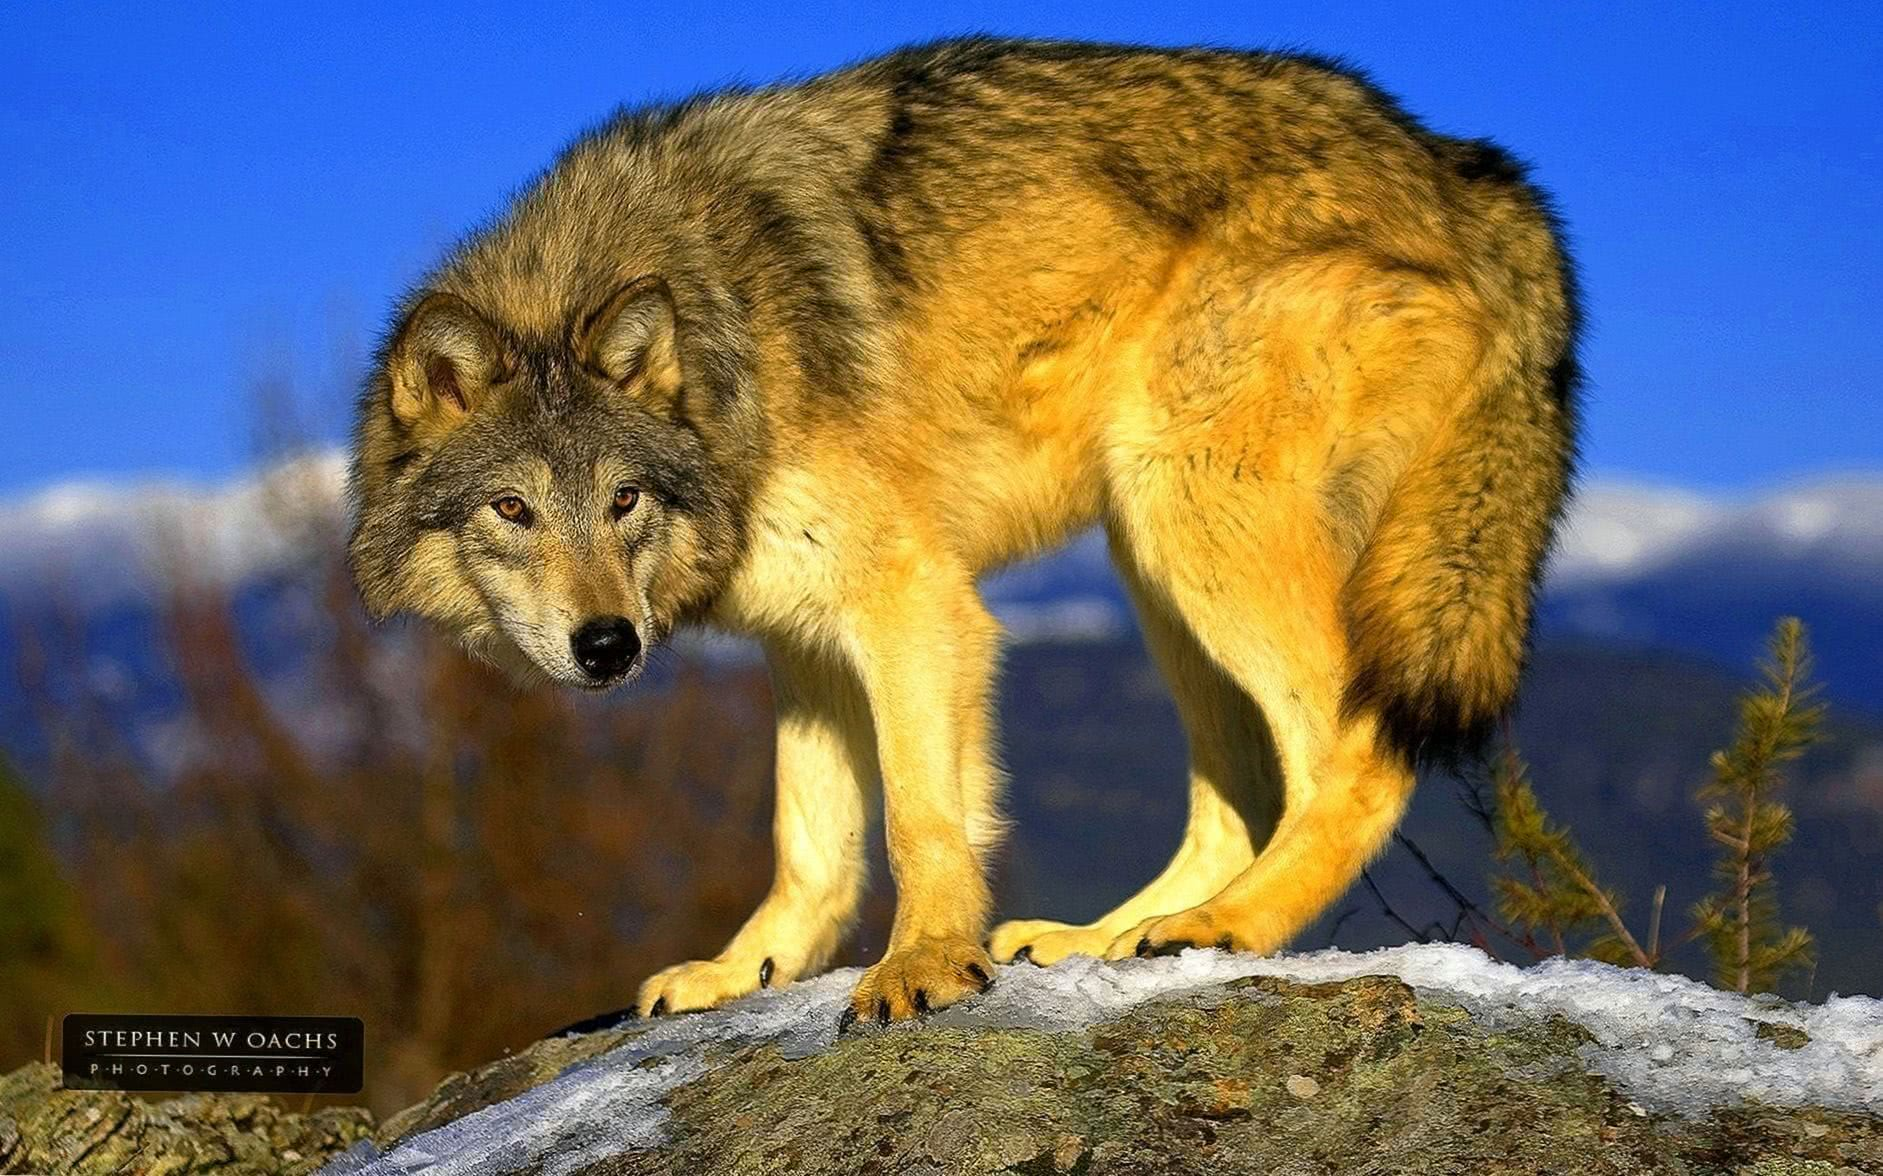 Wolf Animal Wallpapers HD